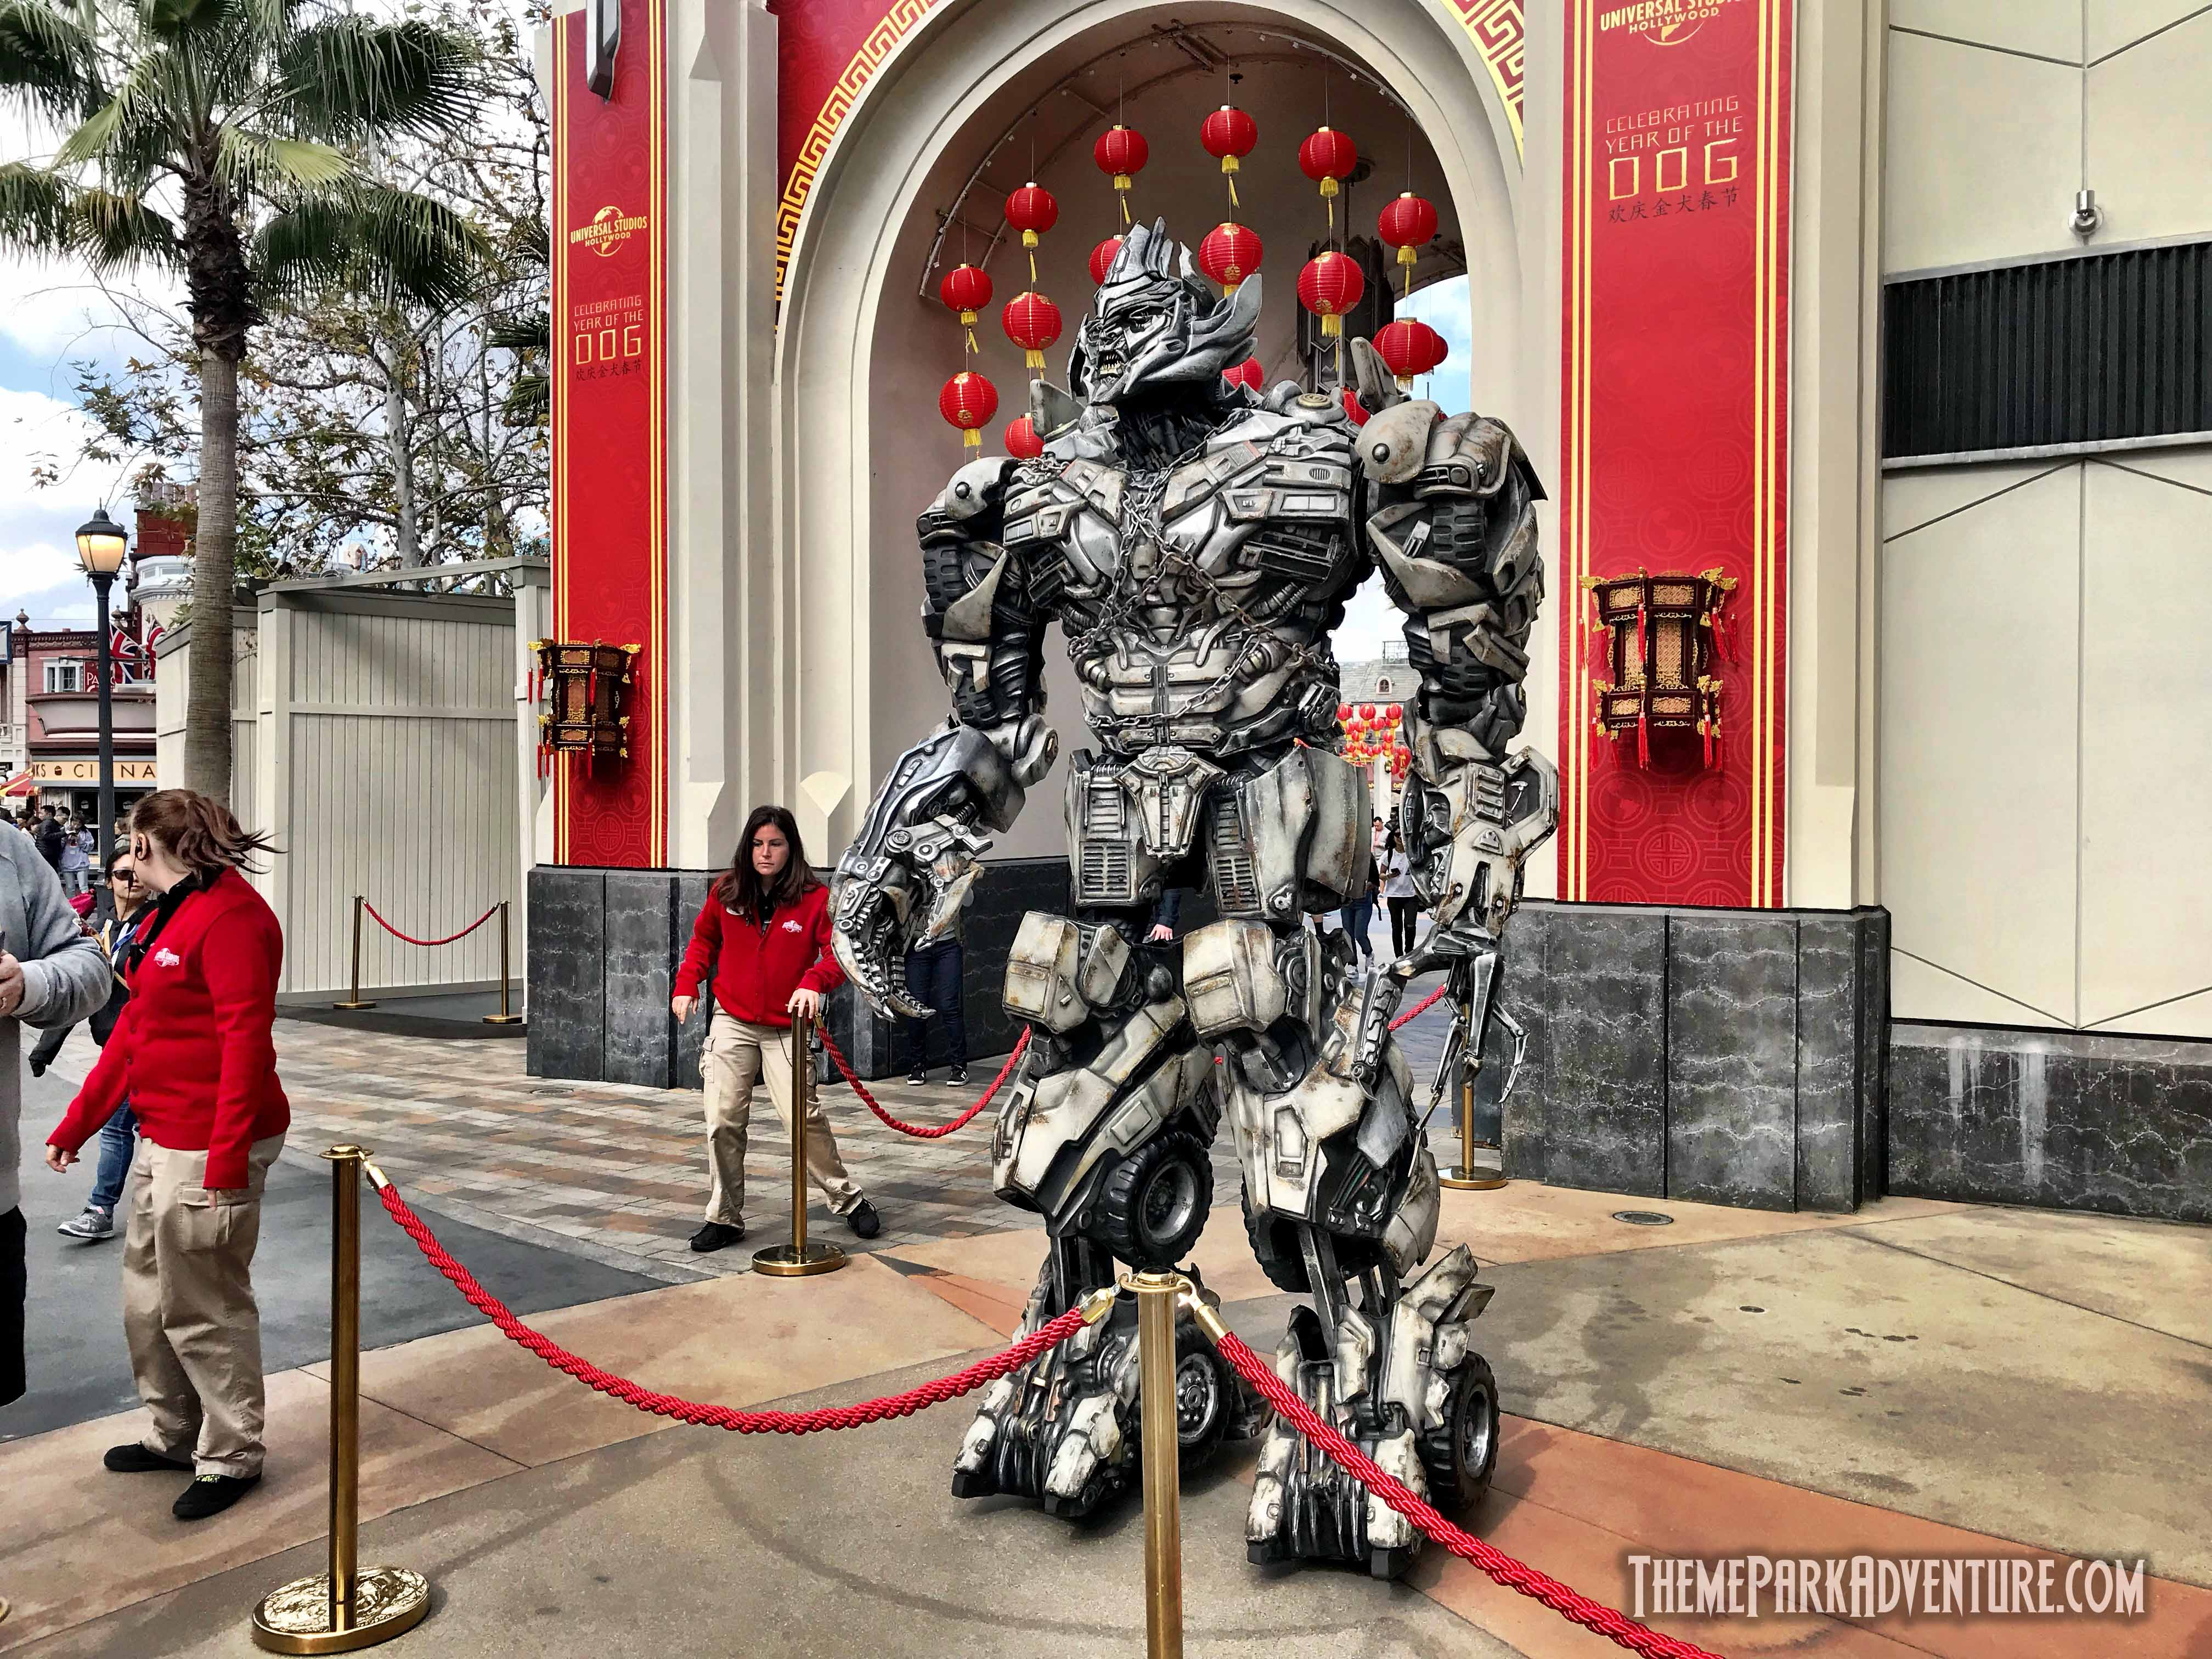 lunar new year 2018 at universal studios hollywood runs daily now through february 25 for ticketing and more information